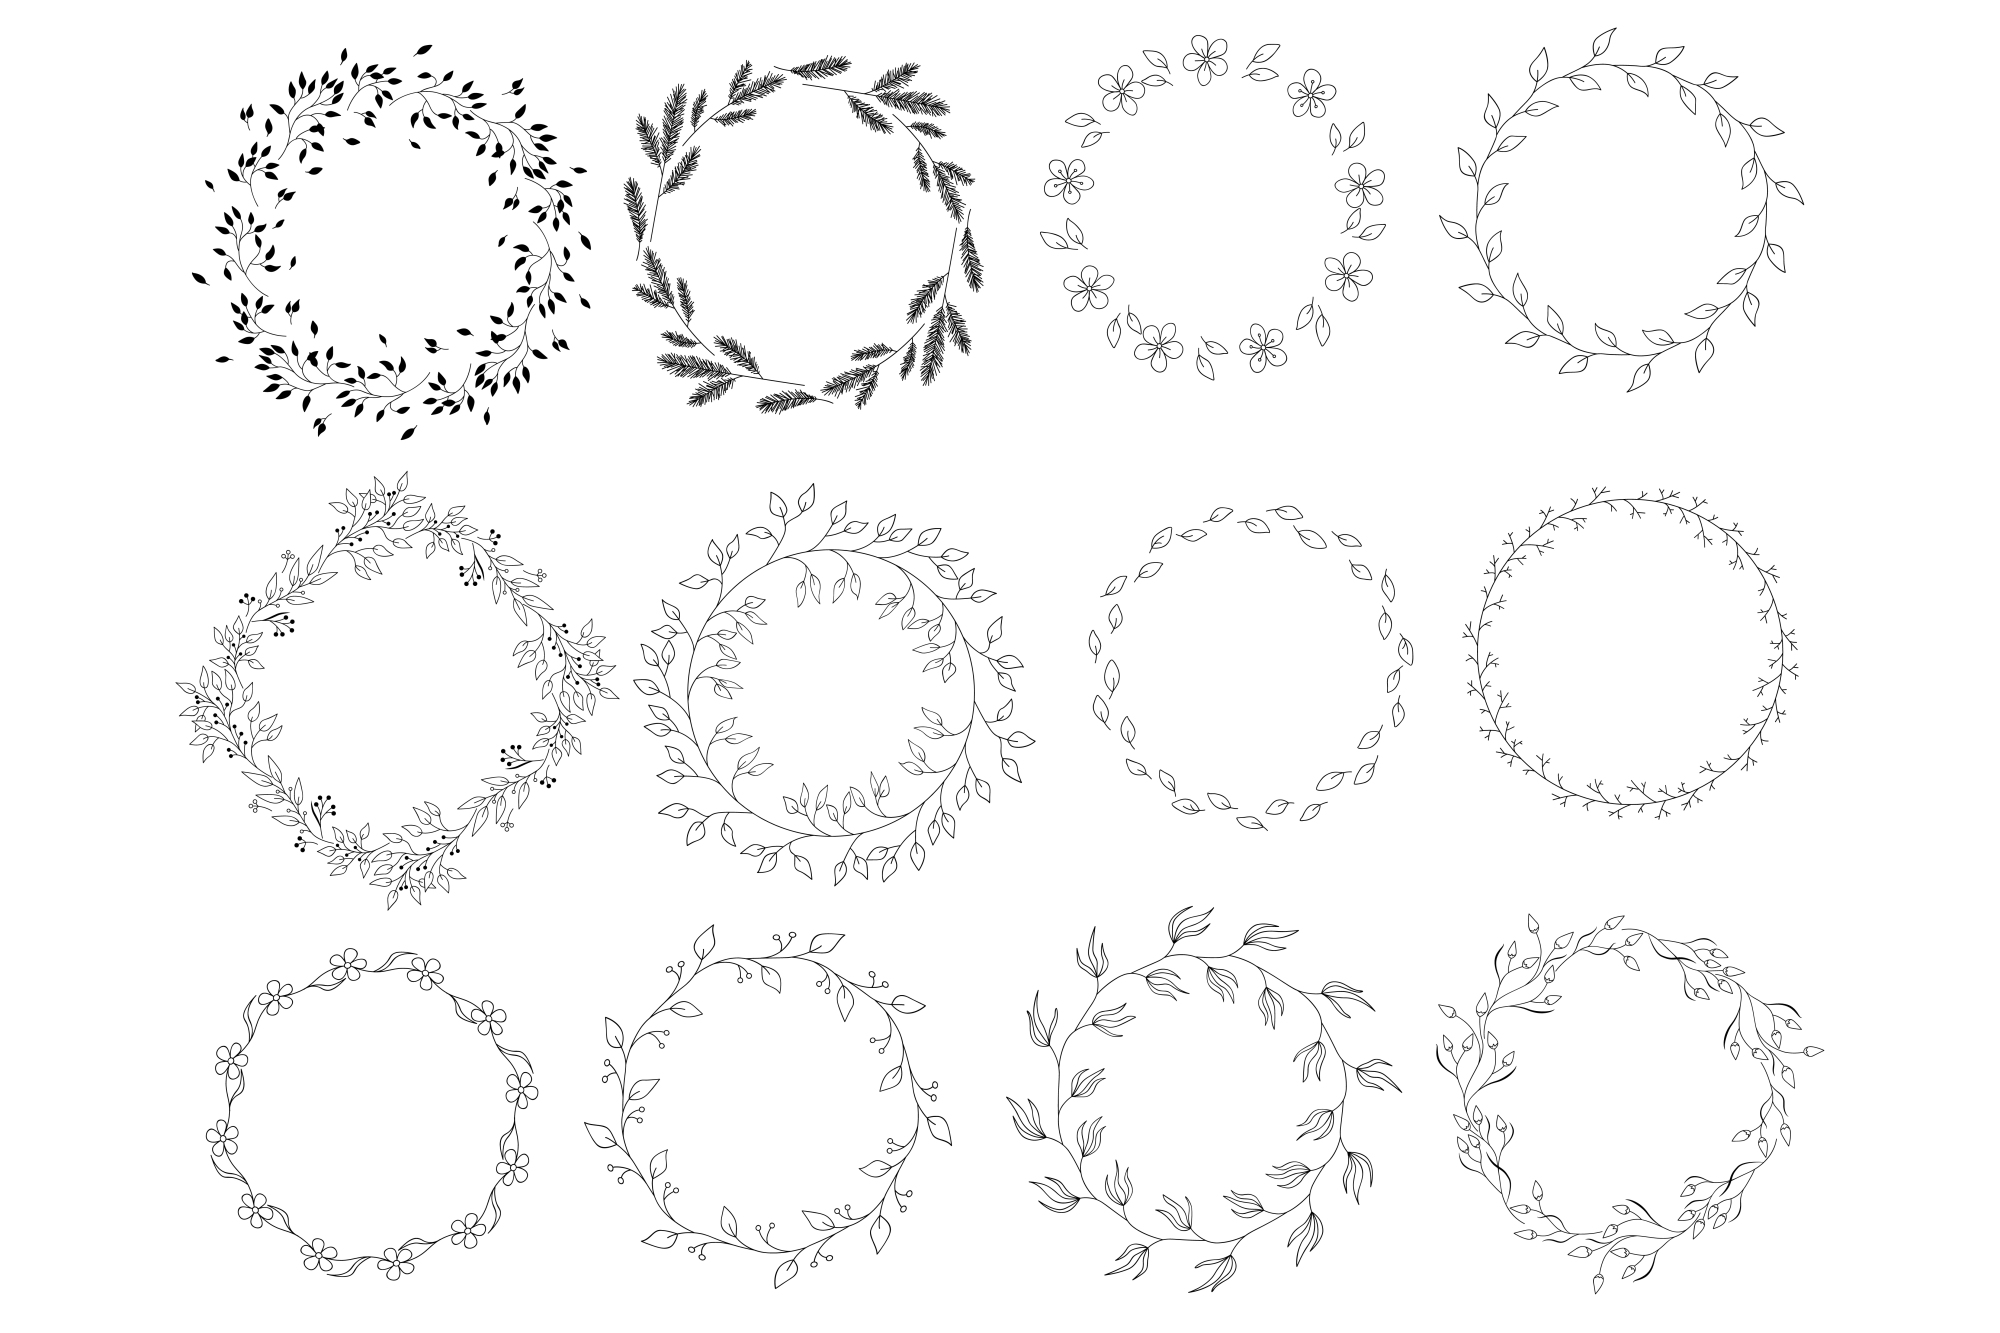 450 handsketched elements. Nature mega pack example image 17